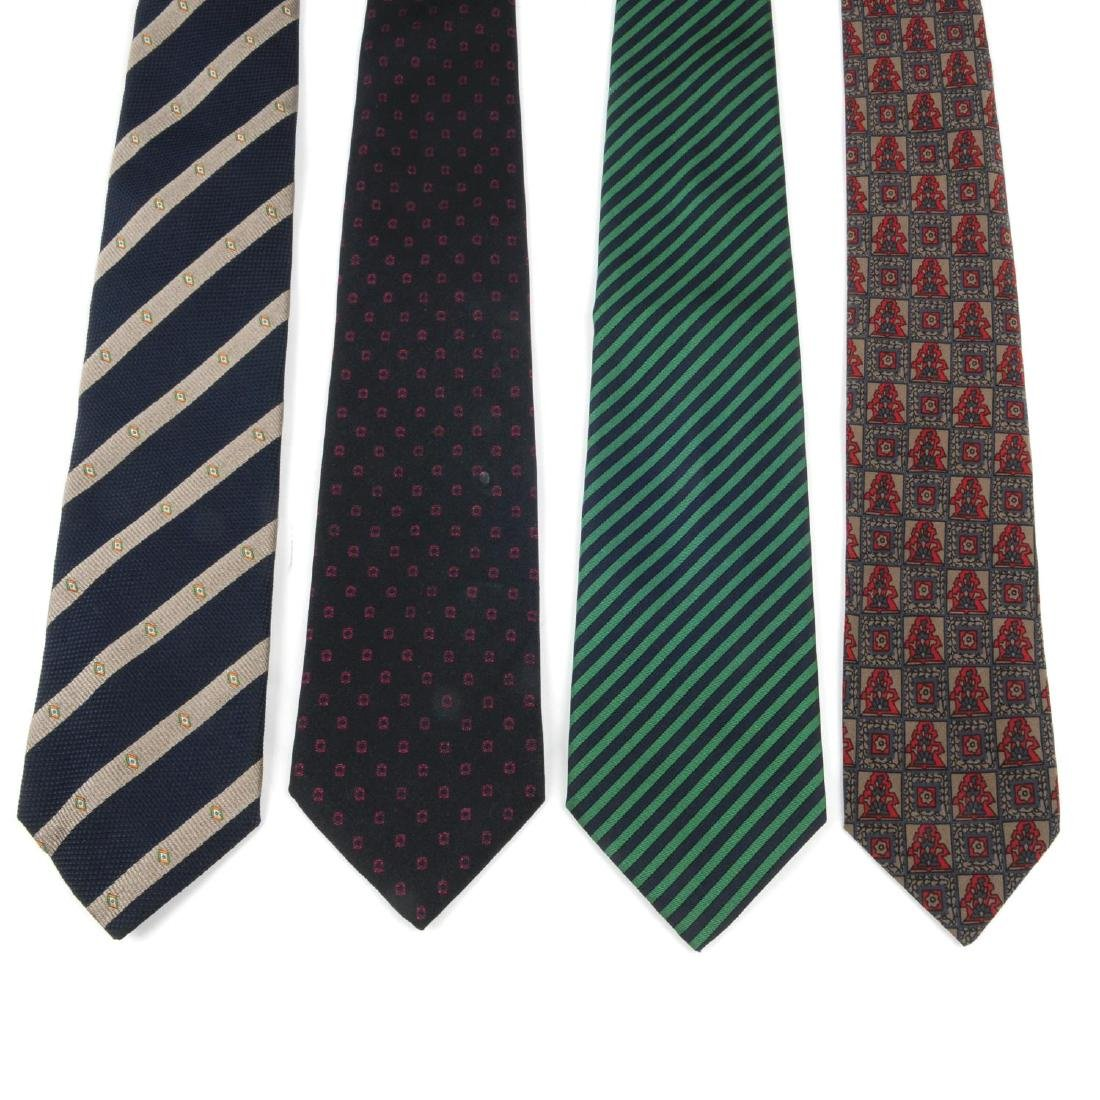 CHRISTIAN DIOR - six ties. To include three ties with